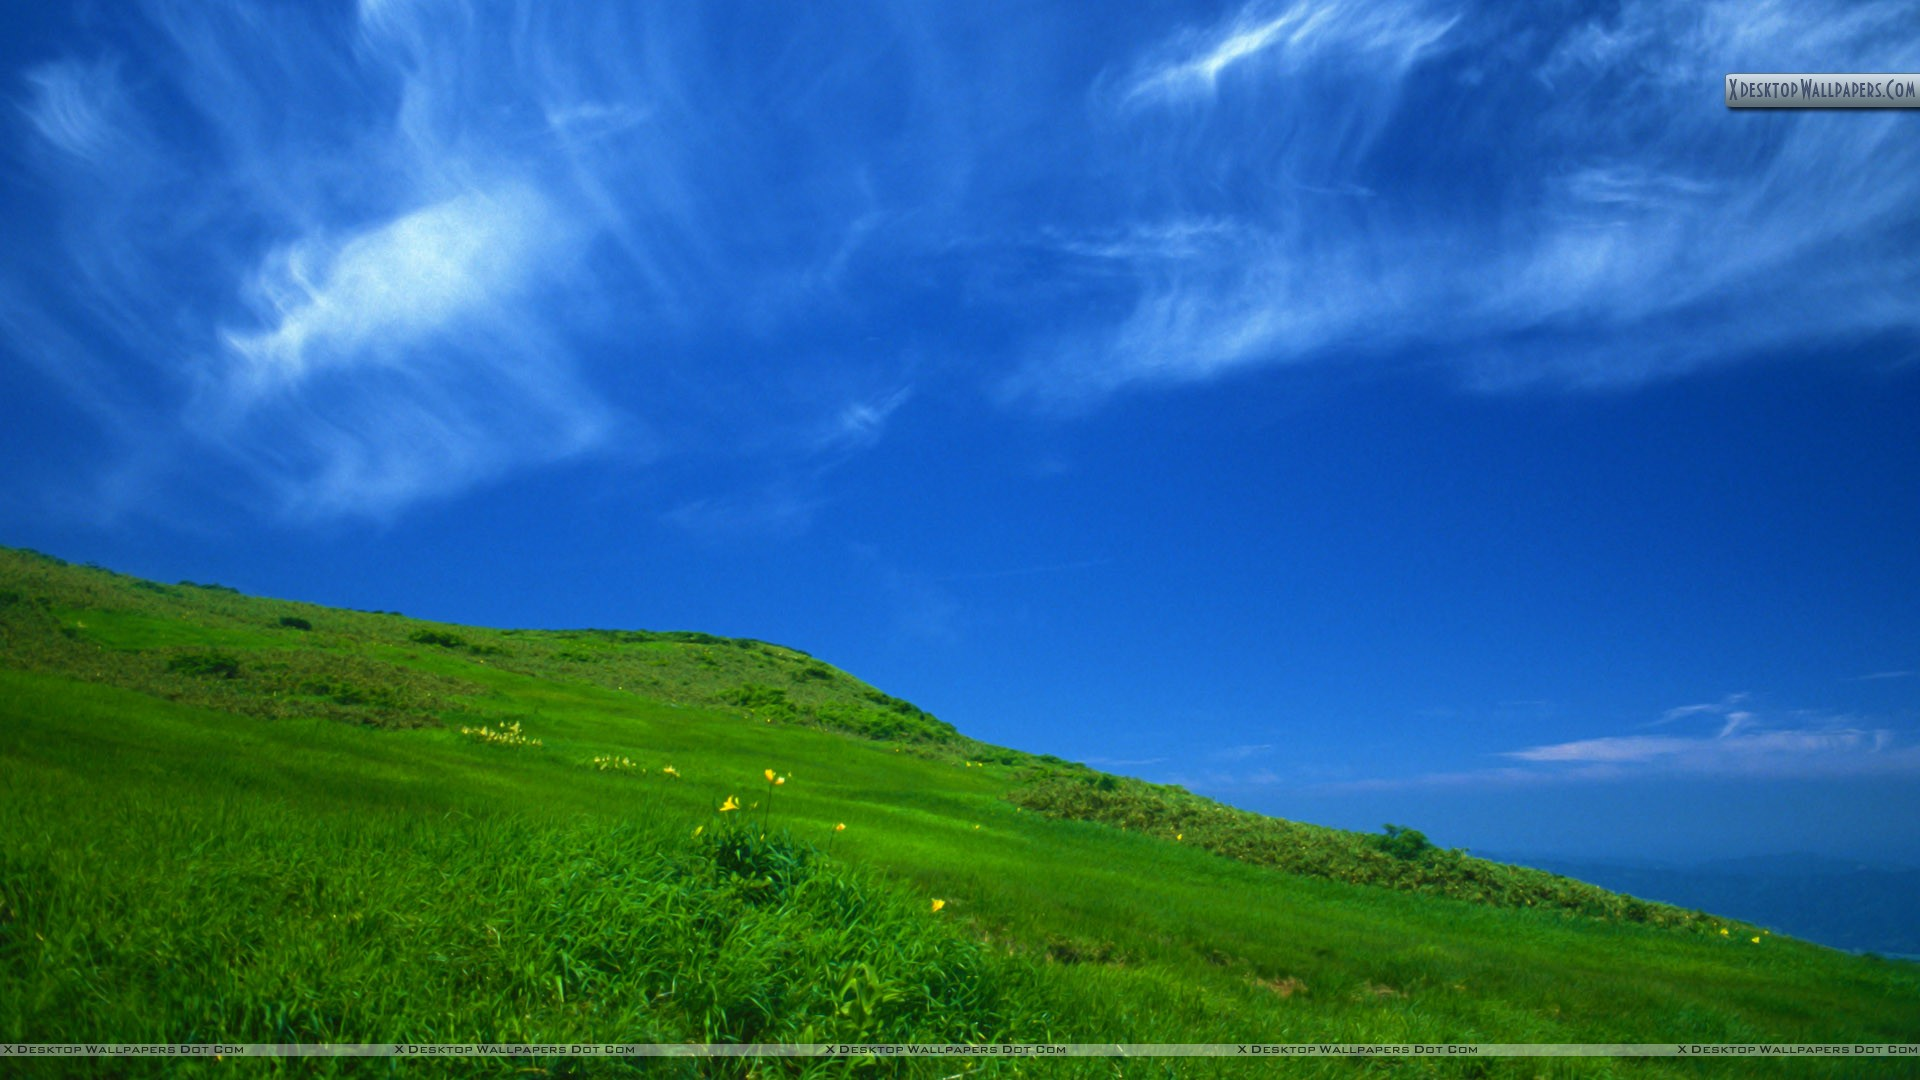 Clear Sky in a sunny day Wallpaper 1920x1080